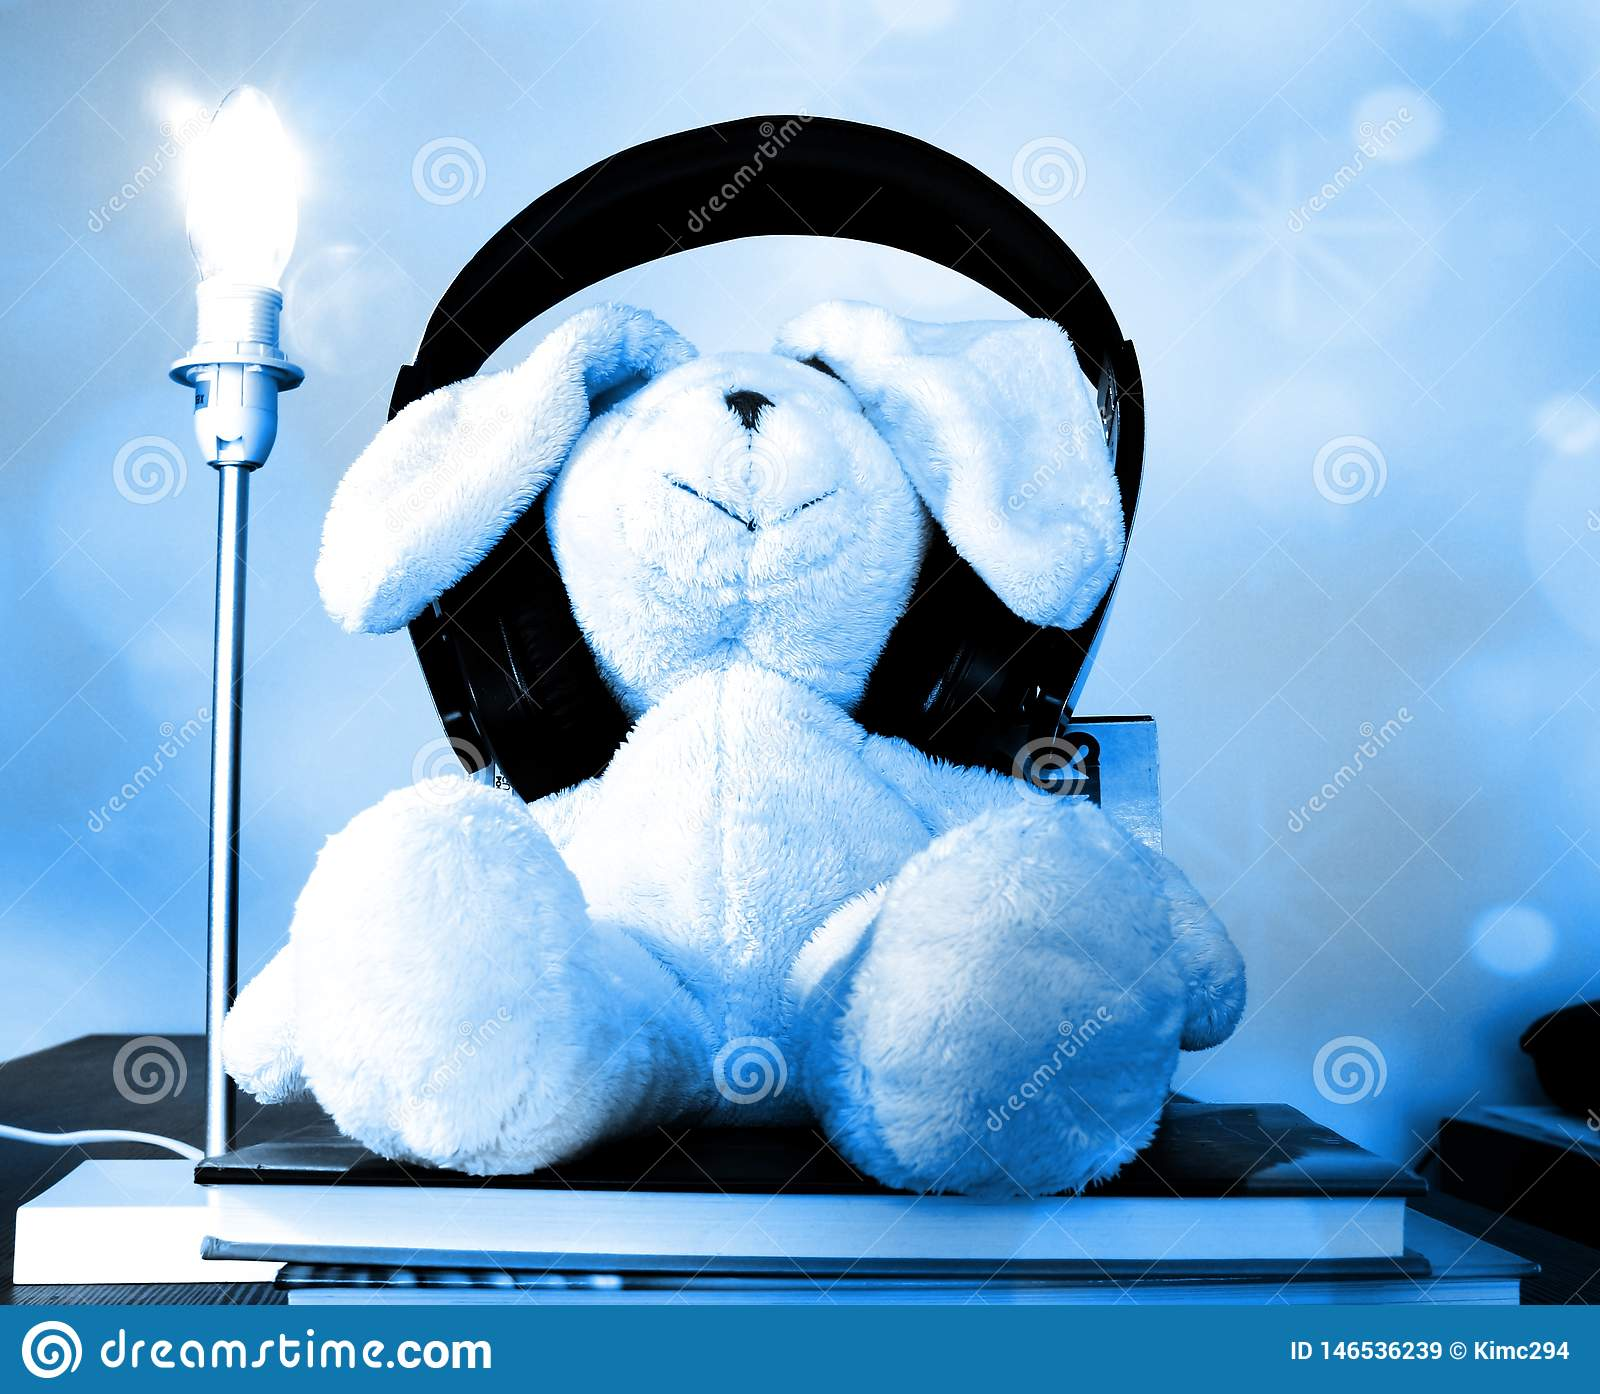 Rabbit plush toy with wireless headphones sitting on books enjoying music. Soft blue bokeh effect